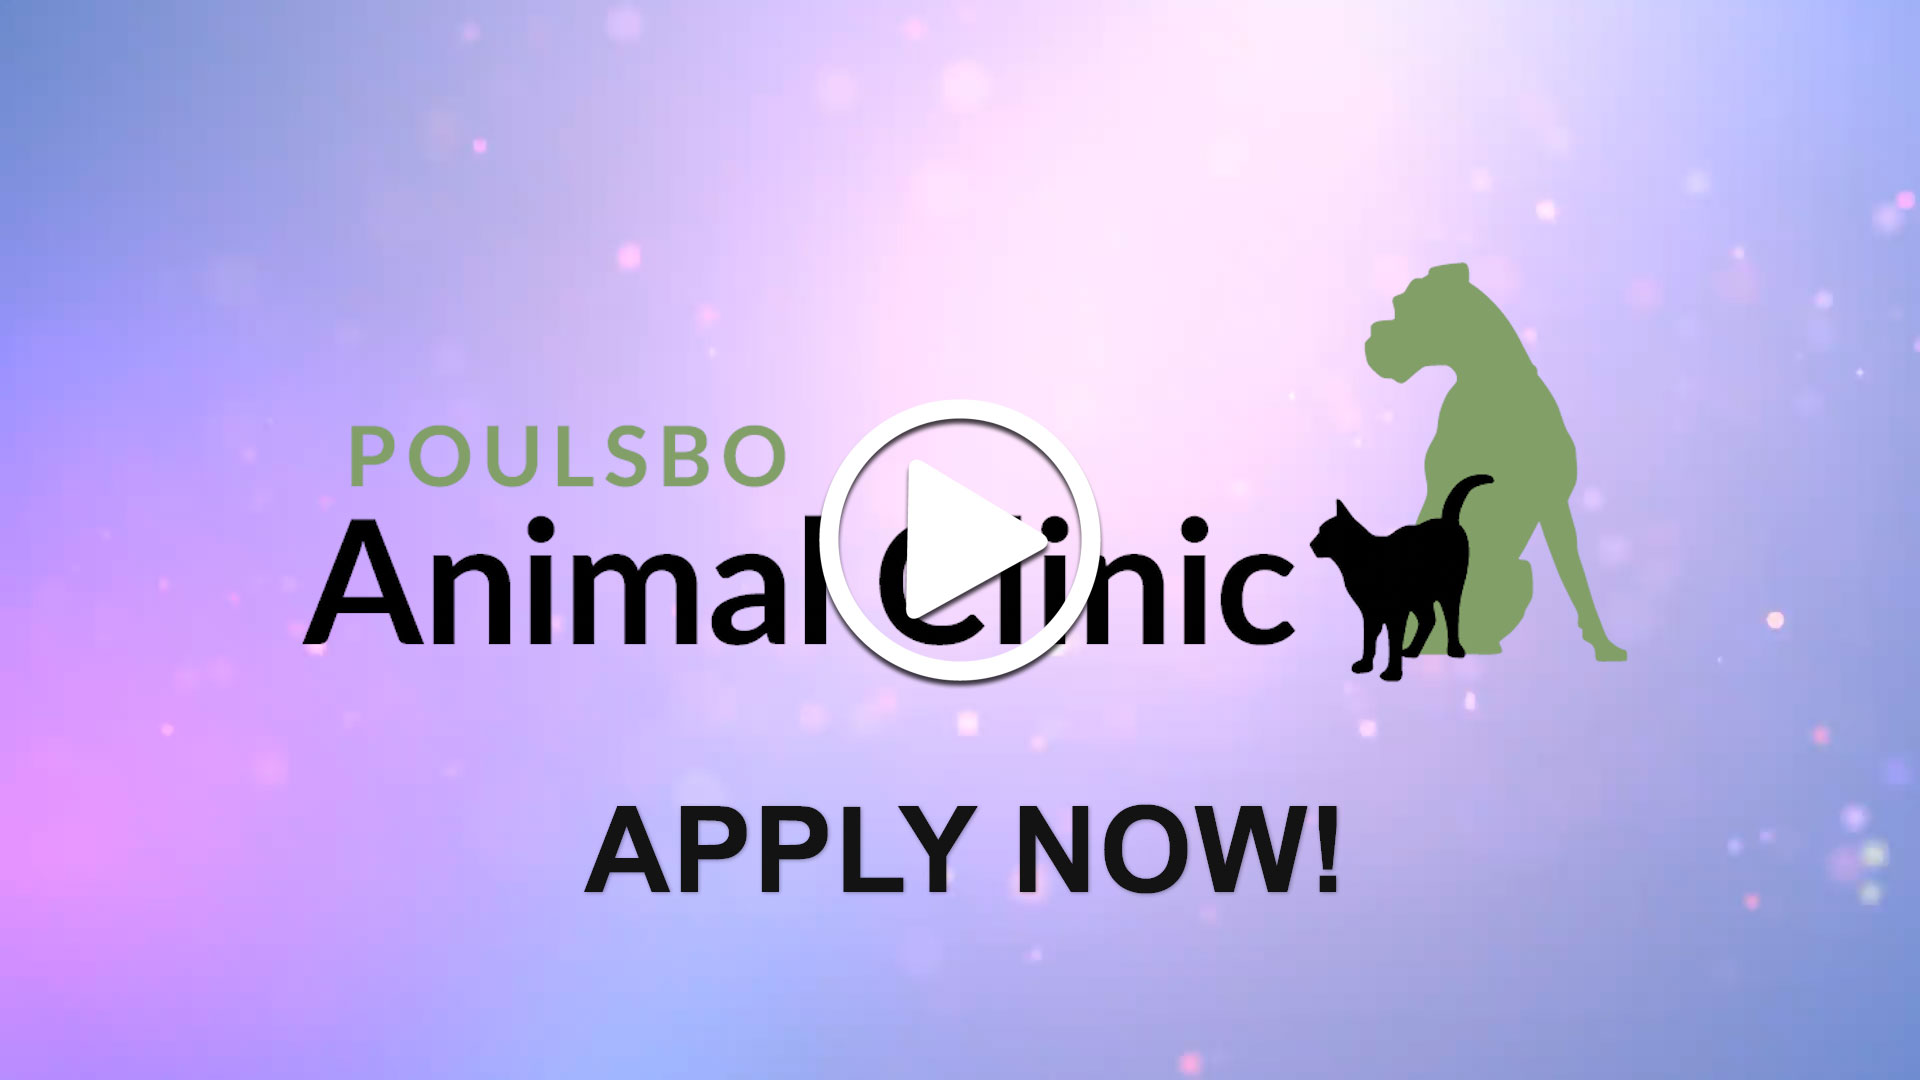 Watch our careers video for available job opening Full-Time Veterinarian for Busy Small Animal Prac in Poulsbo, WA, USA